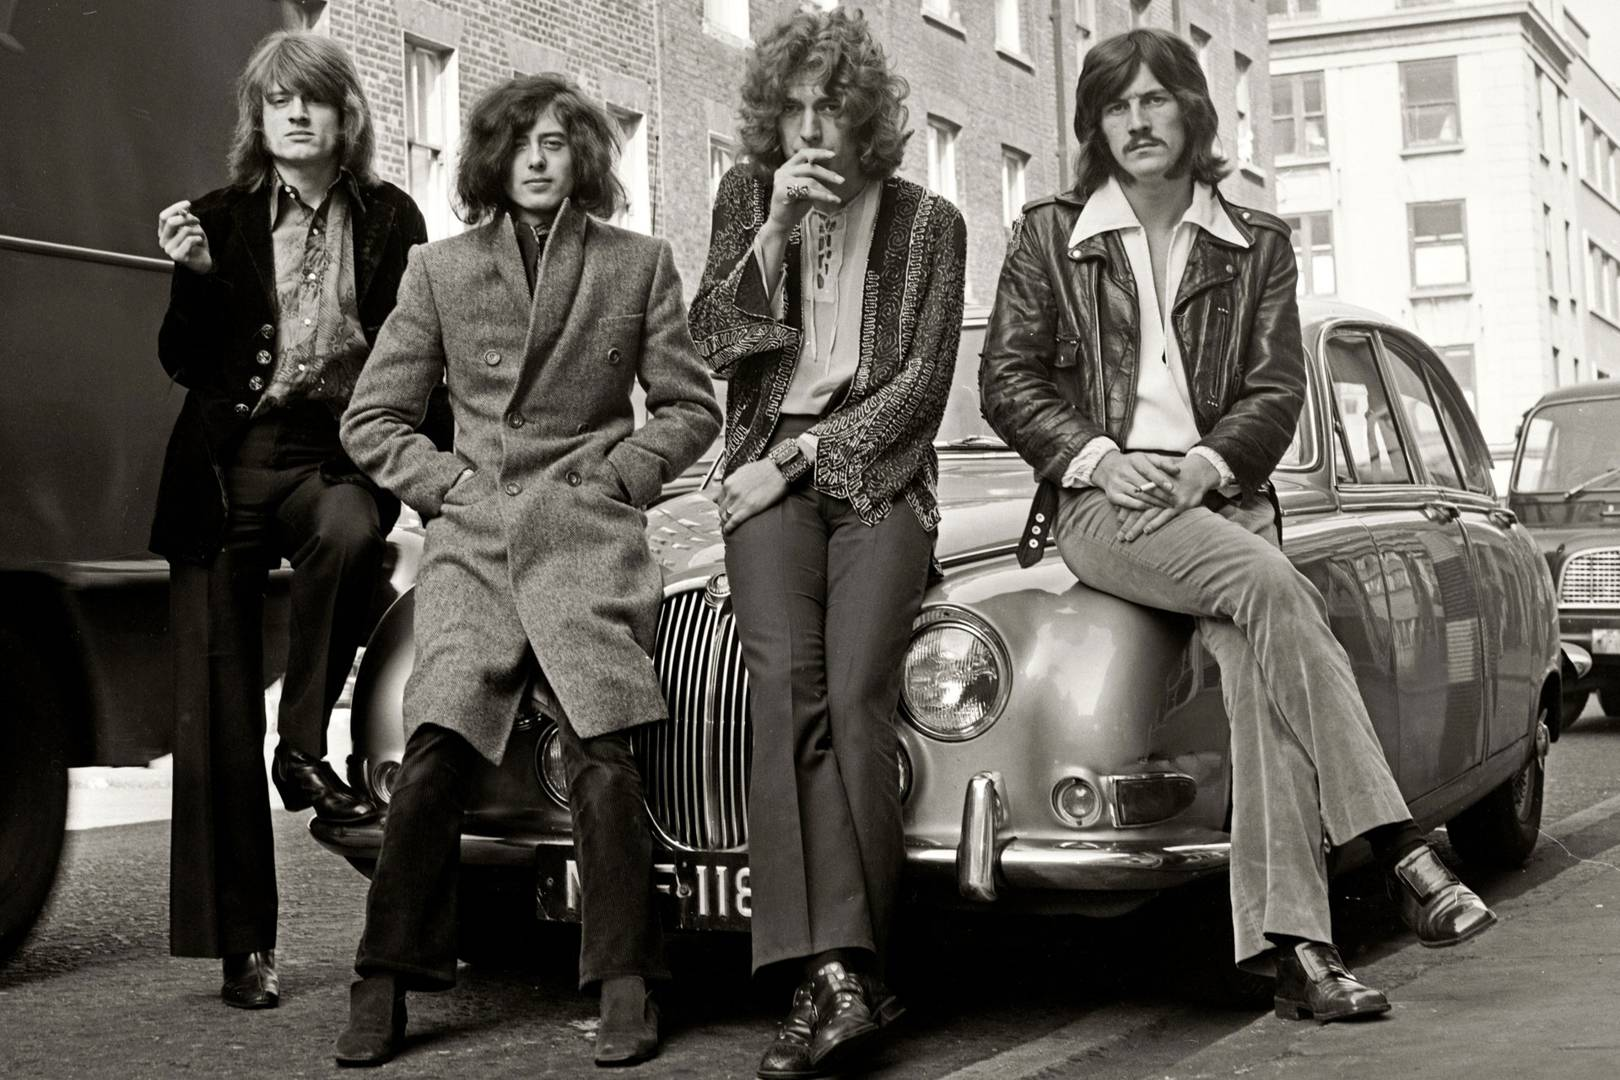 led zeppelin fashion and style legacy told through archive photos